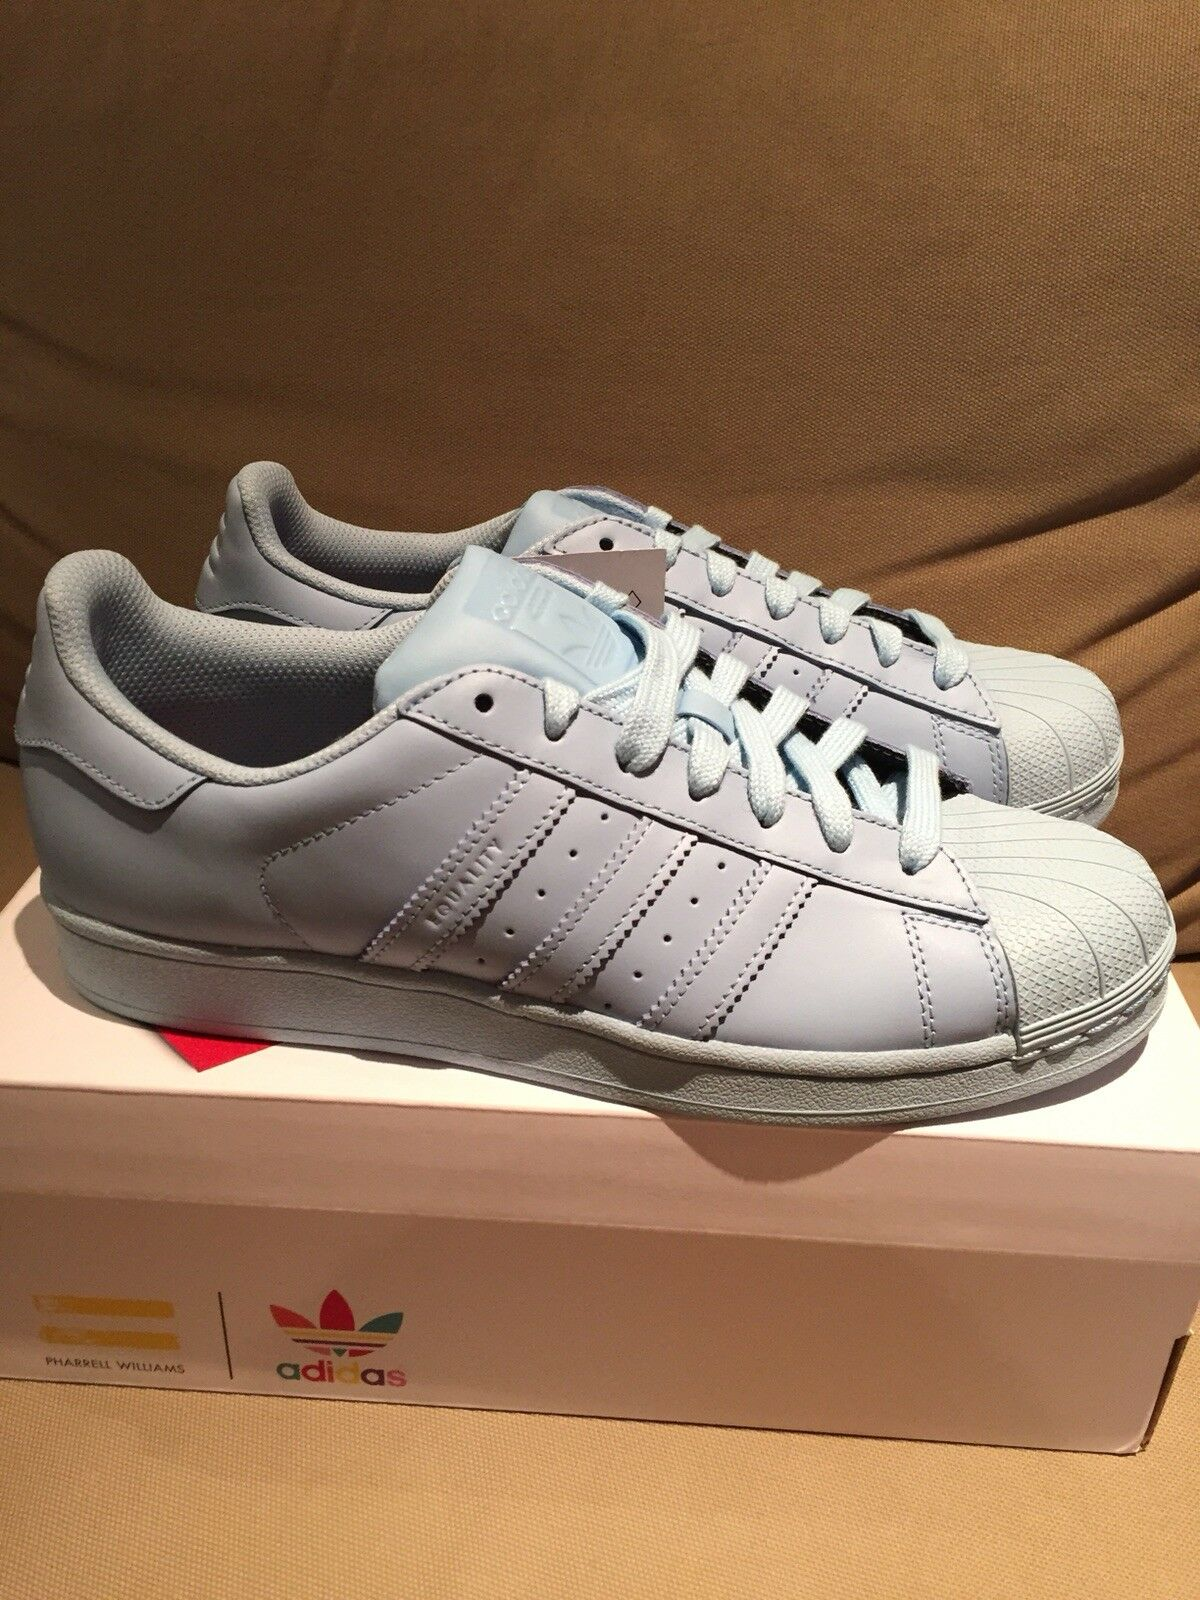 adidas Originals Superstar 2018 Pharrell Williams Supercolor 'Clear Sky' UK8 New